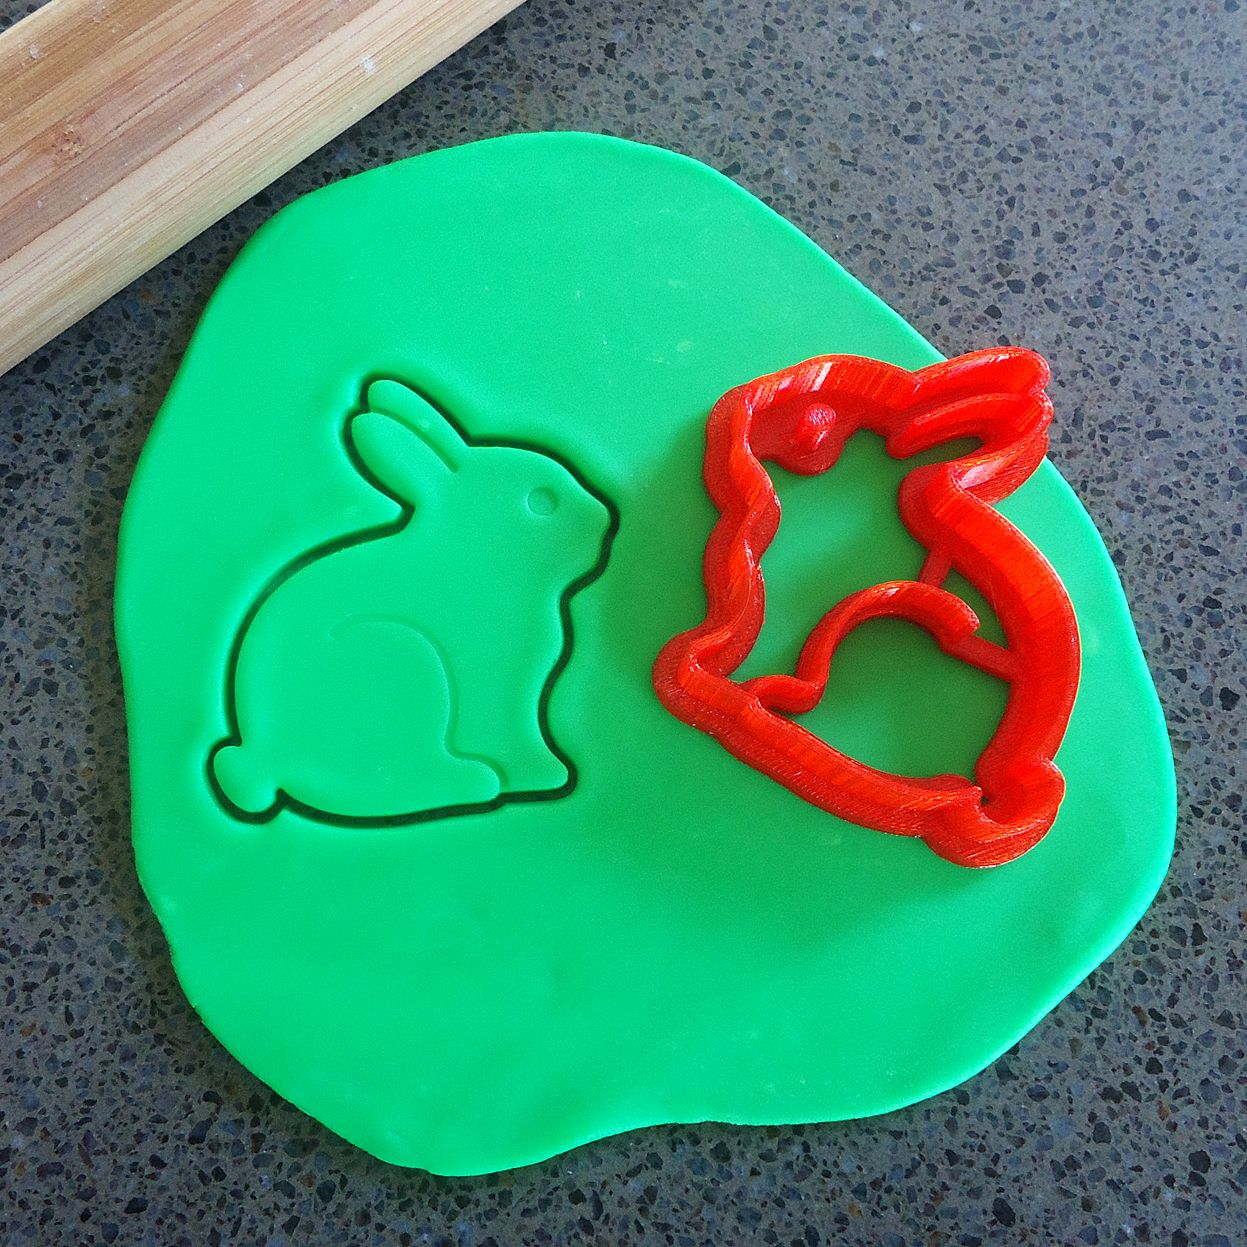 3D Printed Bunny Cookie Cutter | Felt